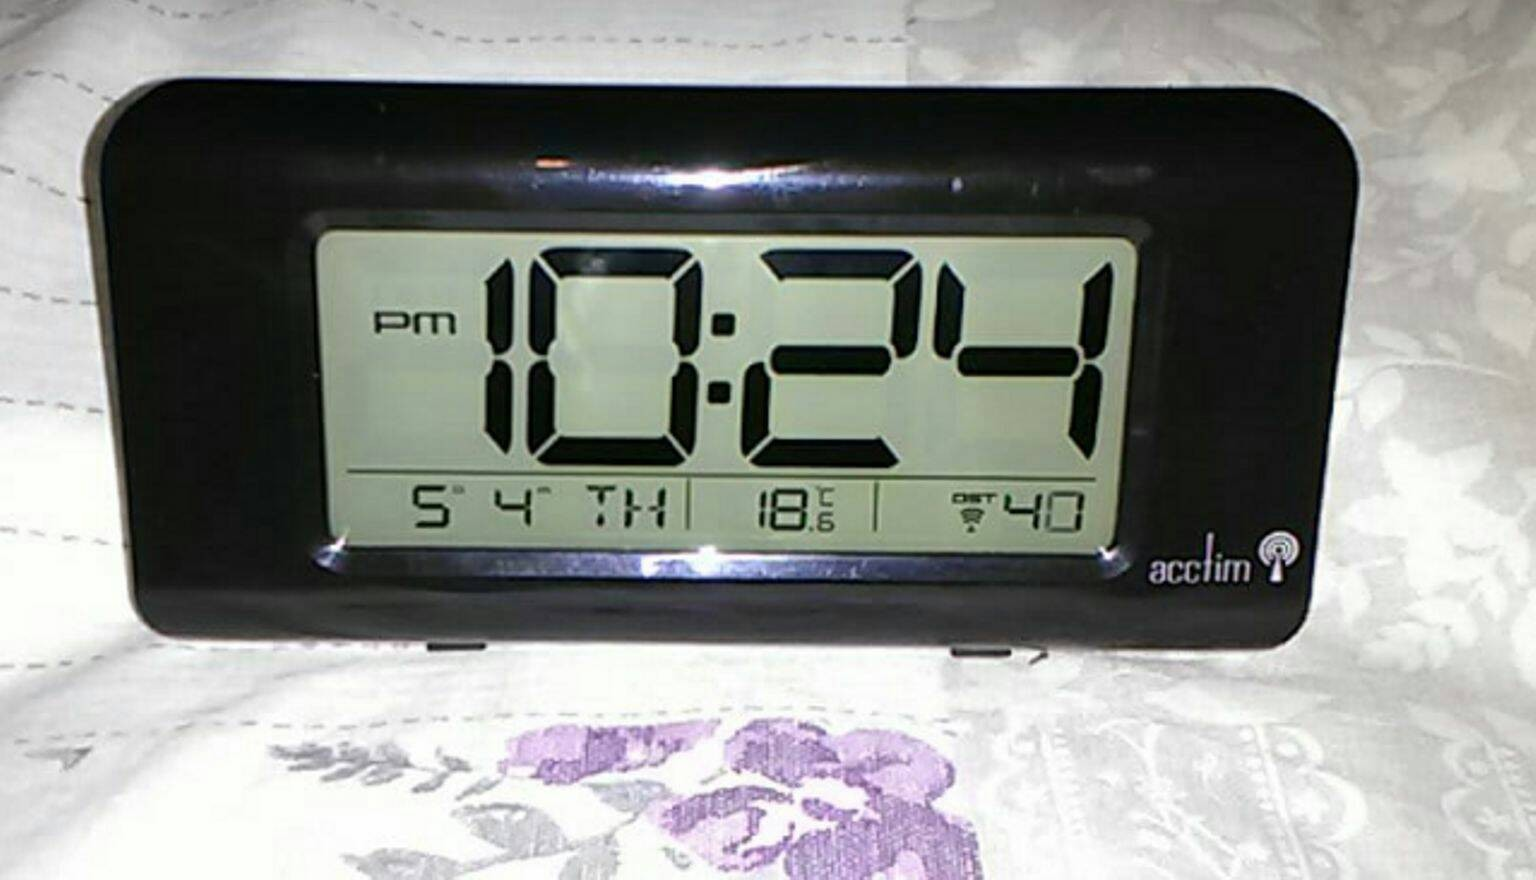 Cheap Acctim Lcd Radio Controlled Alarm Clock For Sale Paperclip